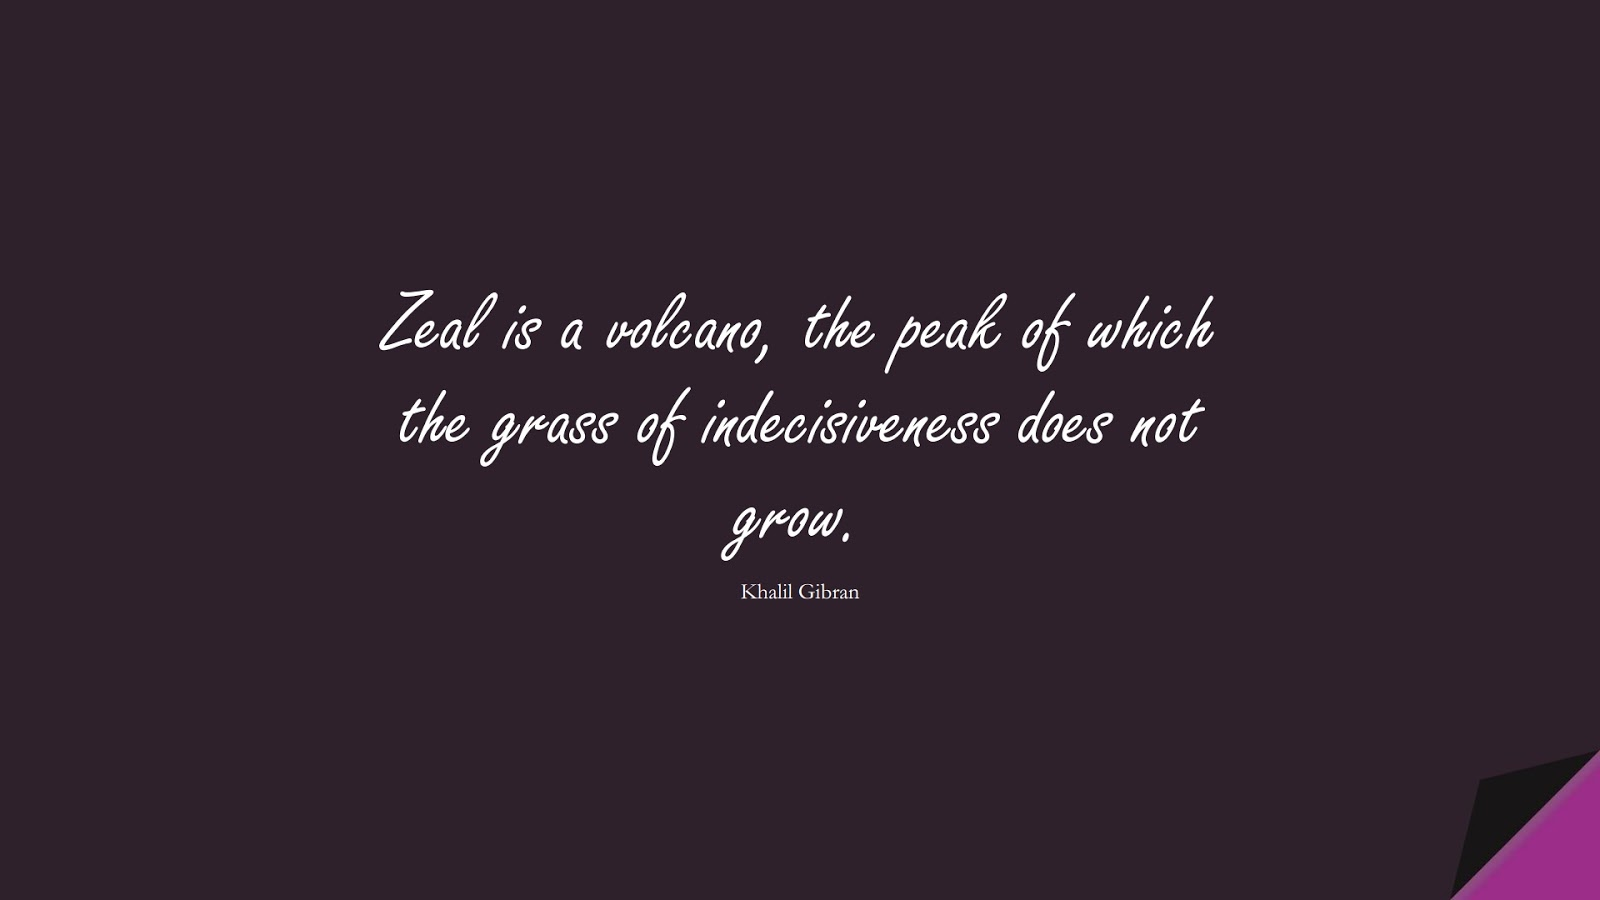 Zeal is a volcano, the peak of which the grass of indecisiveness does not grow. (Khalil Gibran);  #InspirationalQuotes